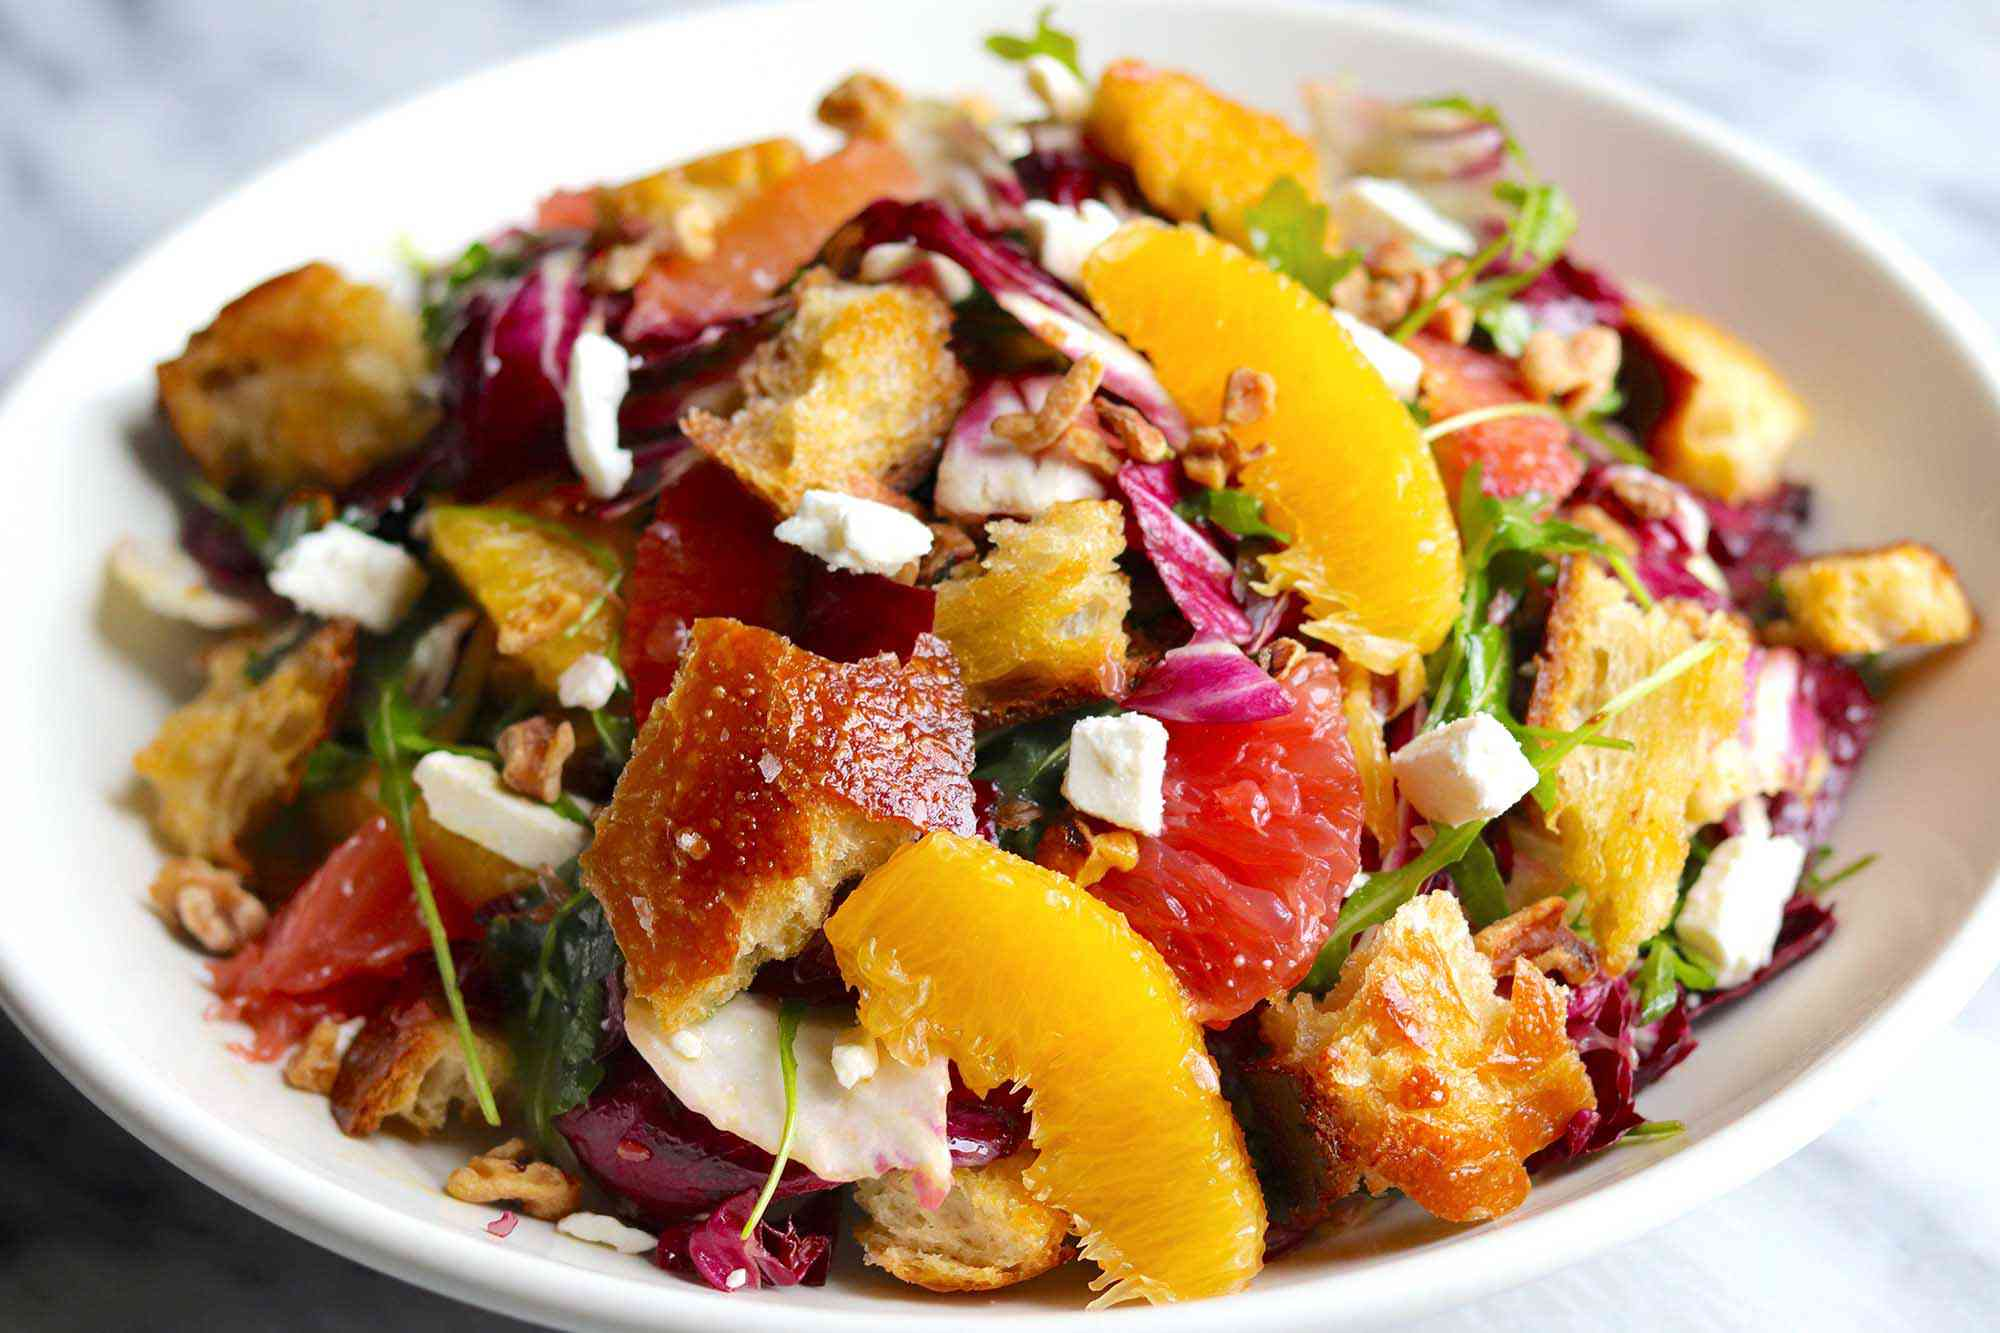 Side view of a winter salad in a white, wide bowl. Supremed orange and grapefruit, radicchio, croutons and feta cheese crumbles are visible.